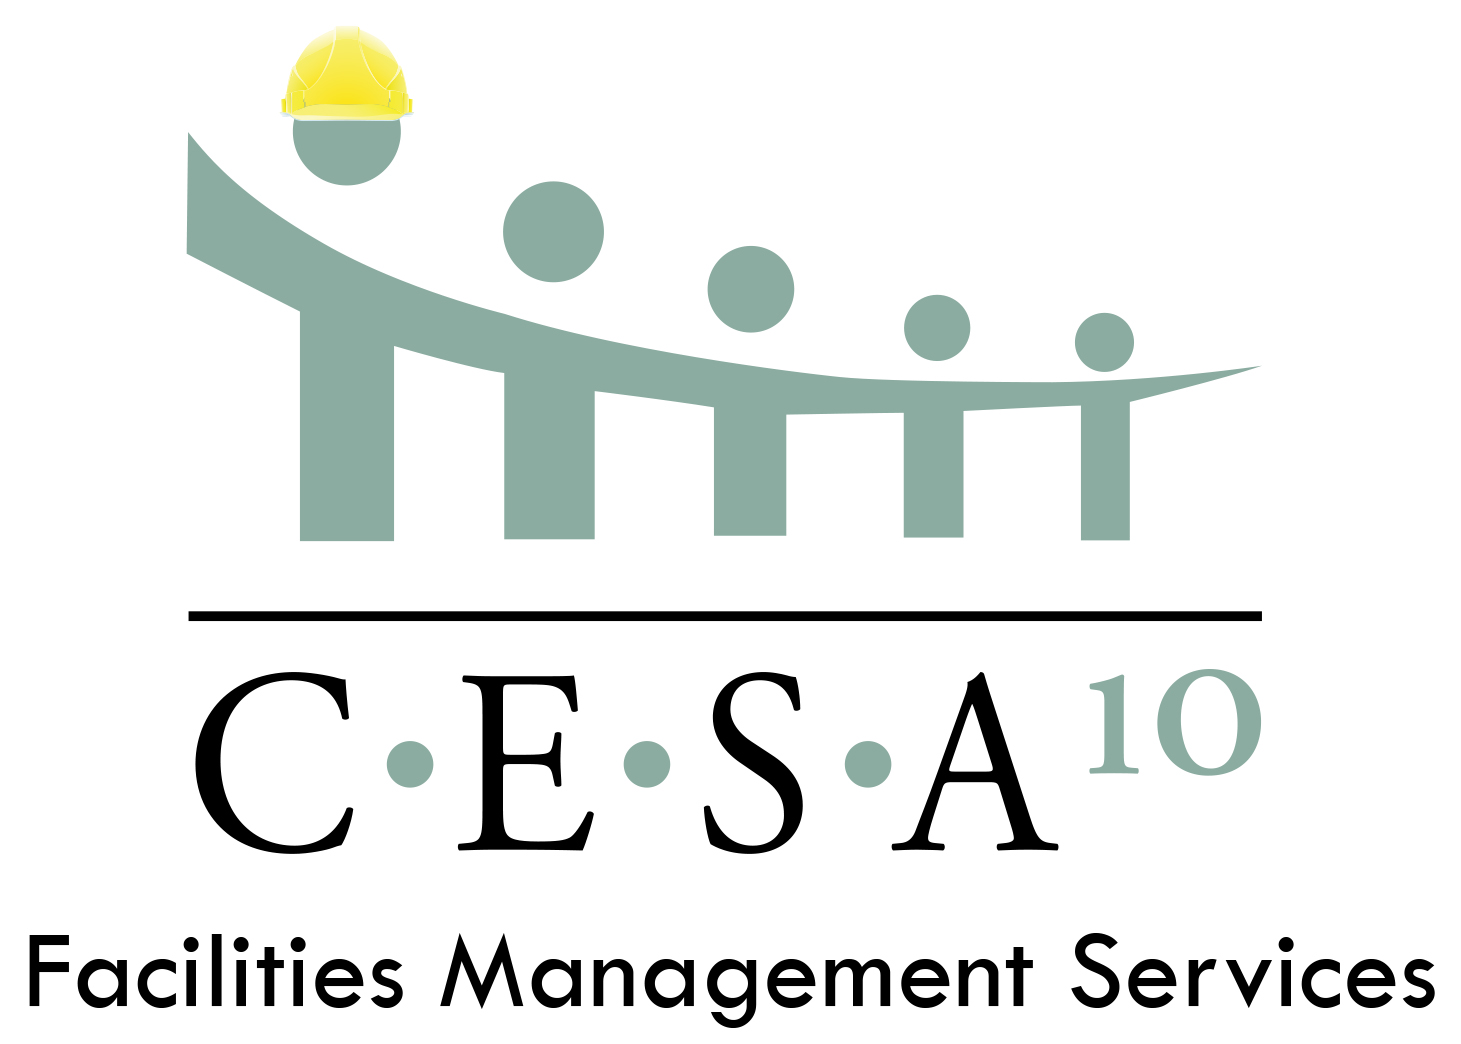 CESA 10 Facilities Management